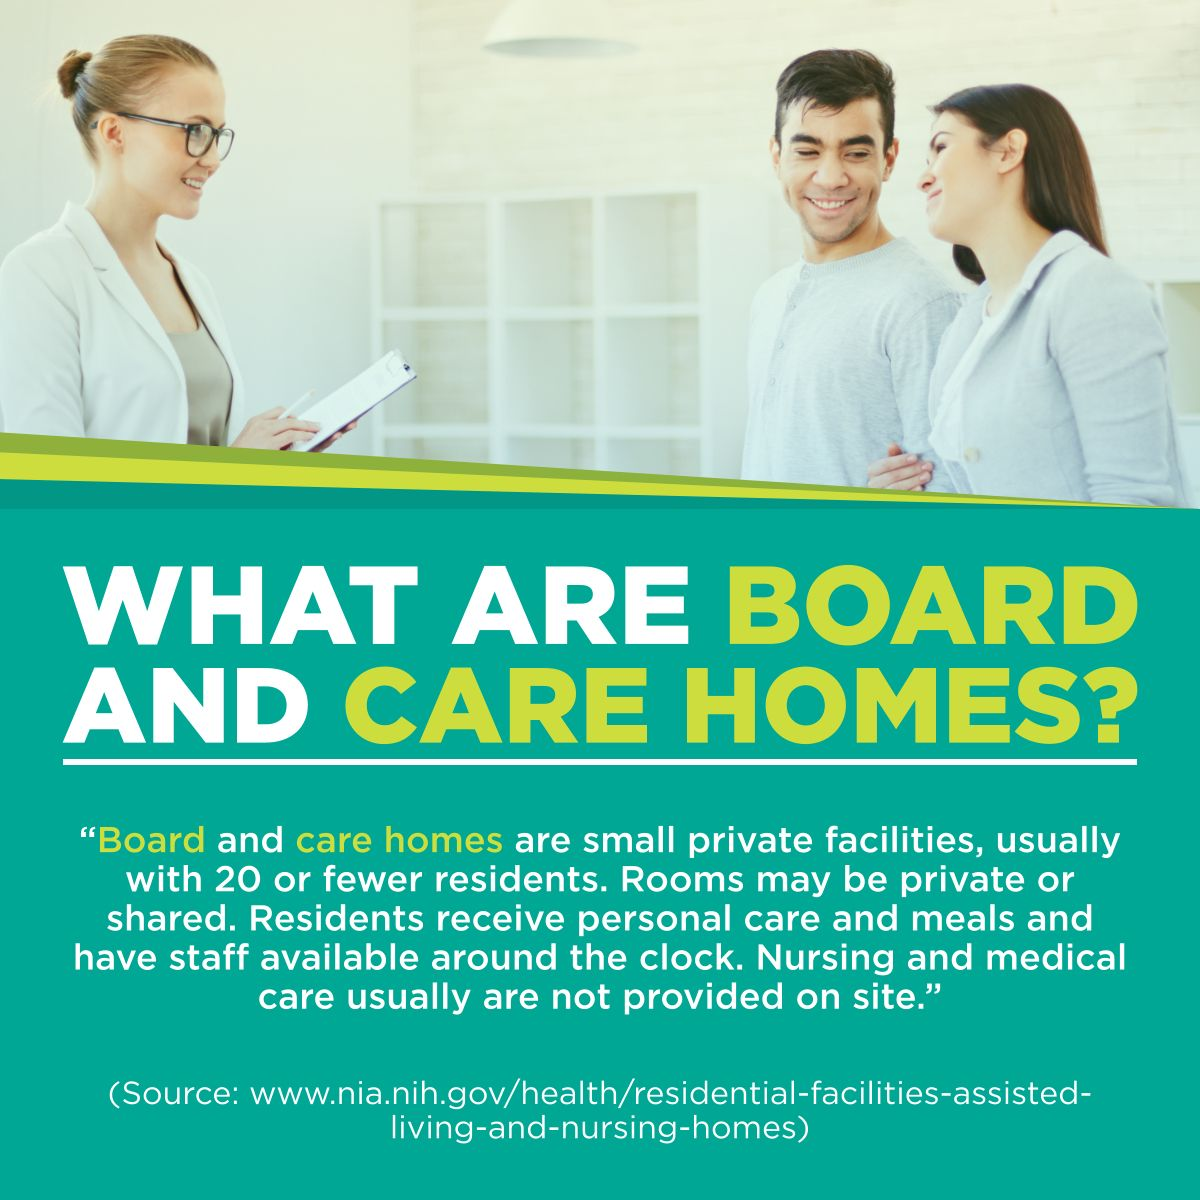 What Are Board and Care Homes?